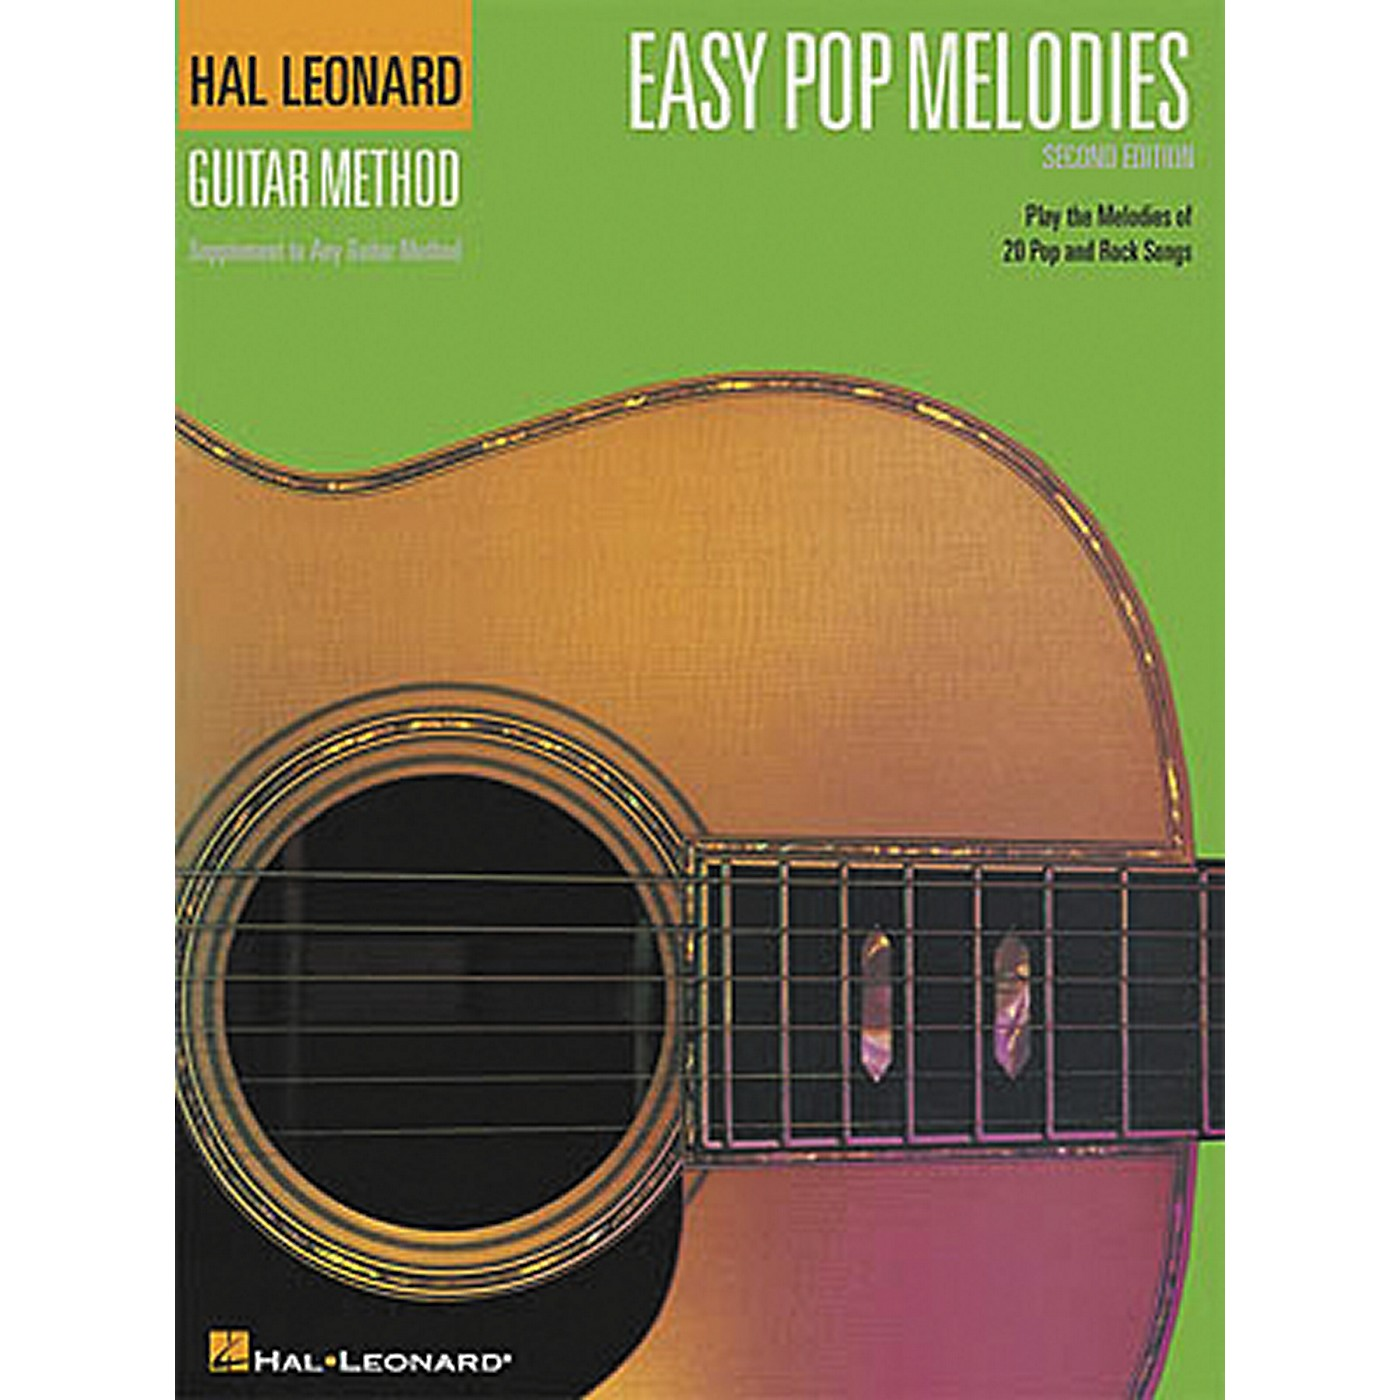 Hal Leonard Easy Pop Melodies - 2nd Edition Guitar Chord Songbook thumbnail